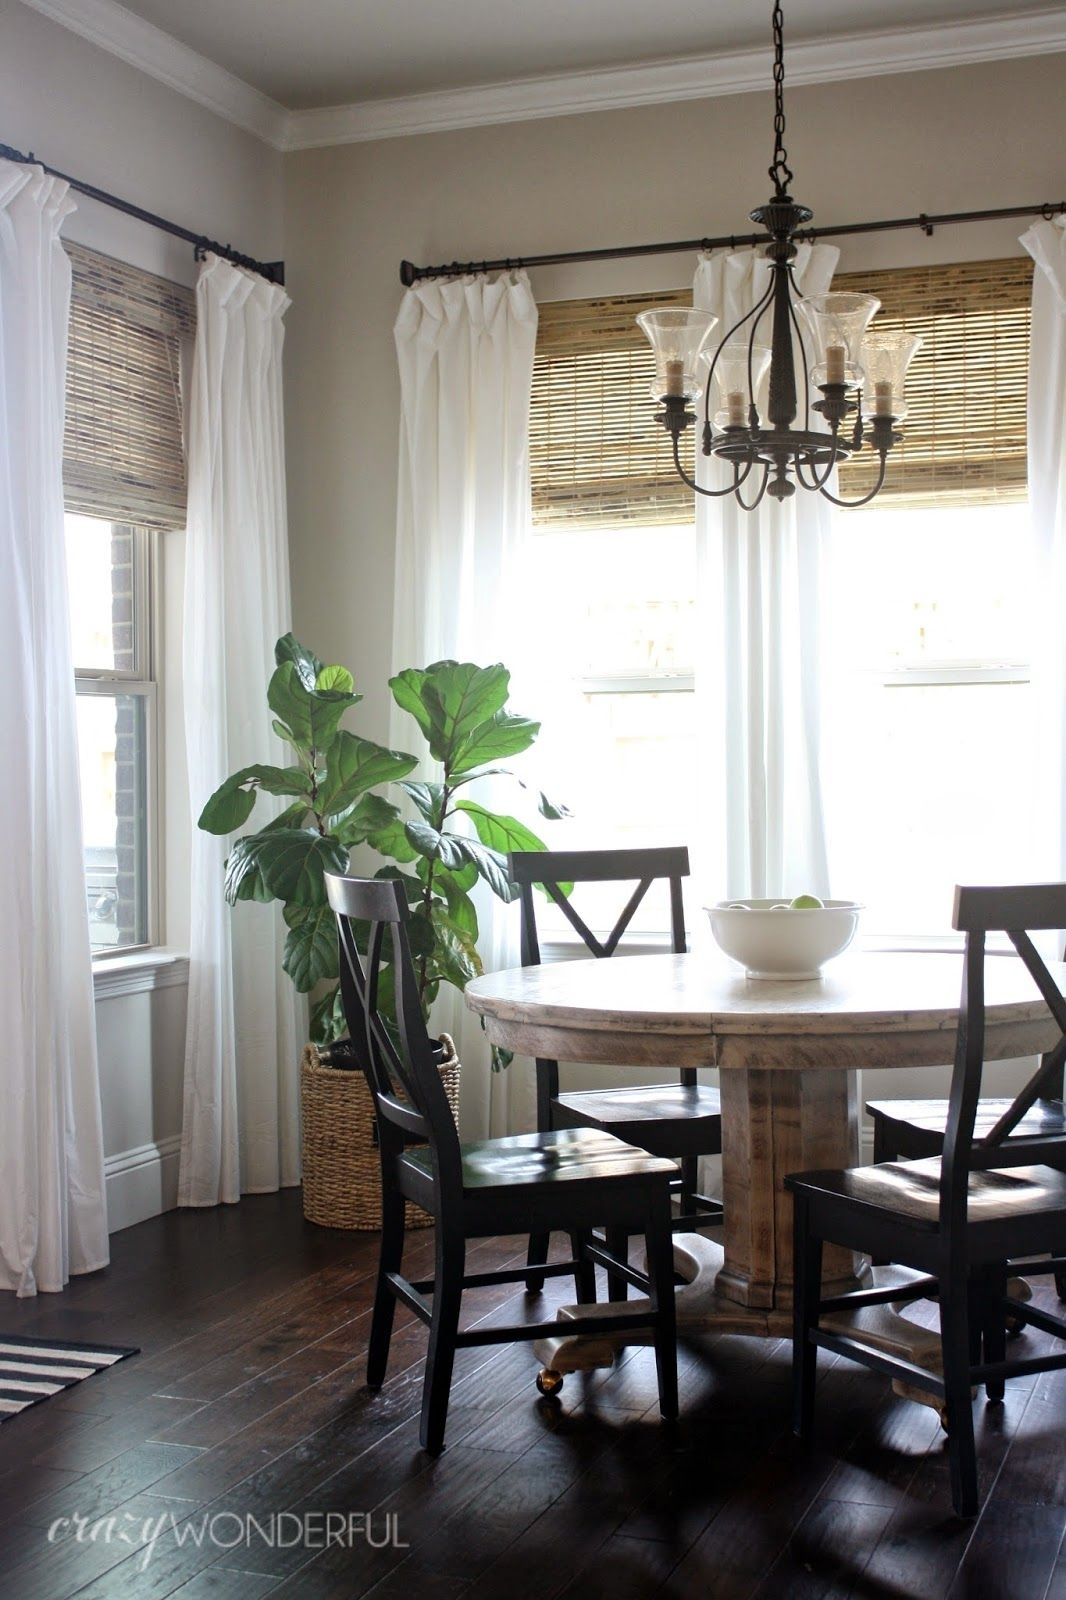 bamboo roman shades   curtain   curtains, farmhouse curtains, bamboo within Perfect Curtain For Your Home